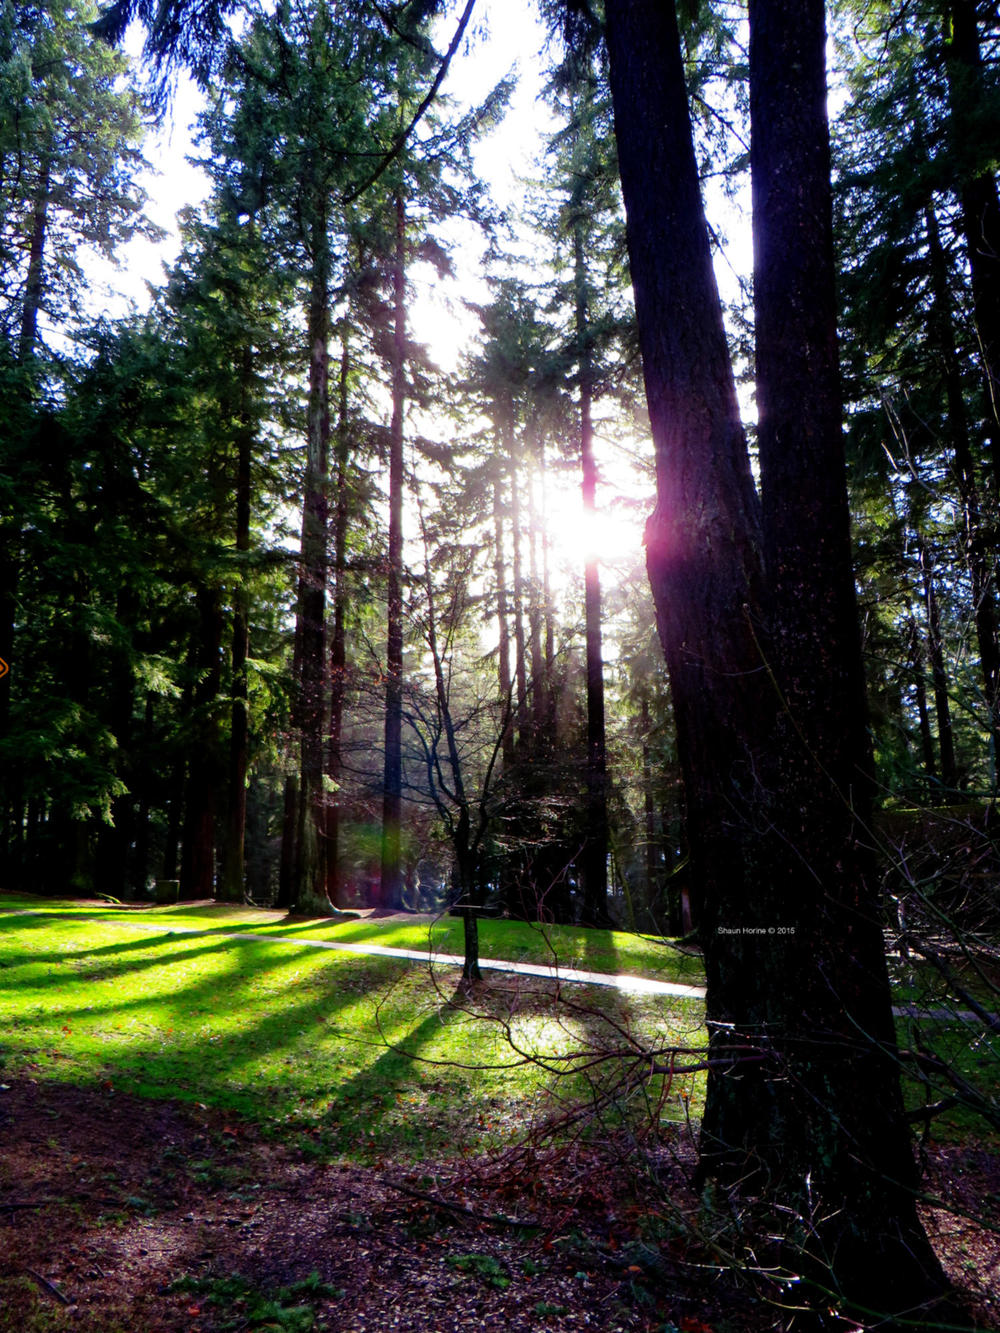 More sunlight pokes through the trees in Mt. Tabor Park, Portland OR.  Canon SX280 HS